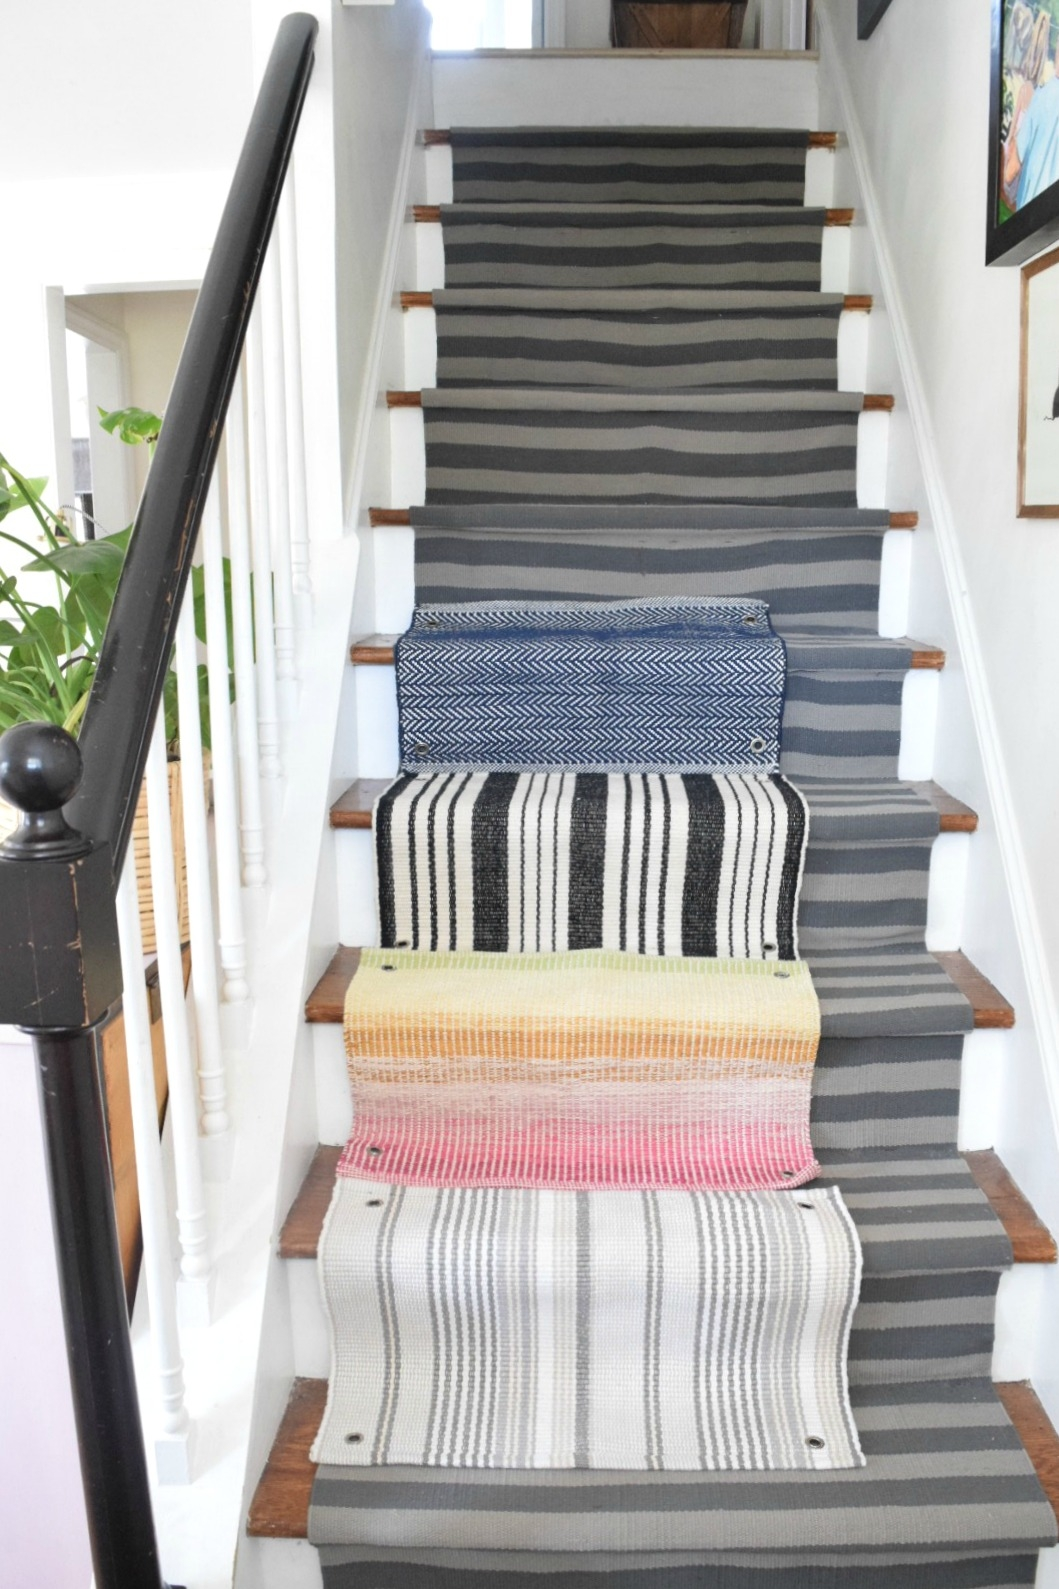 Learn From Our Mistakes When Installing A Stair Runner Nesting | Running Carpet For Stairs | Stair Tread | Hardwood | Wood | Grey | Stair Runners